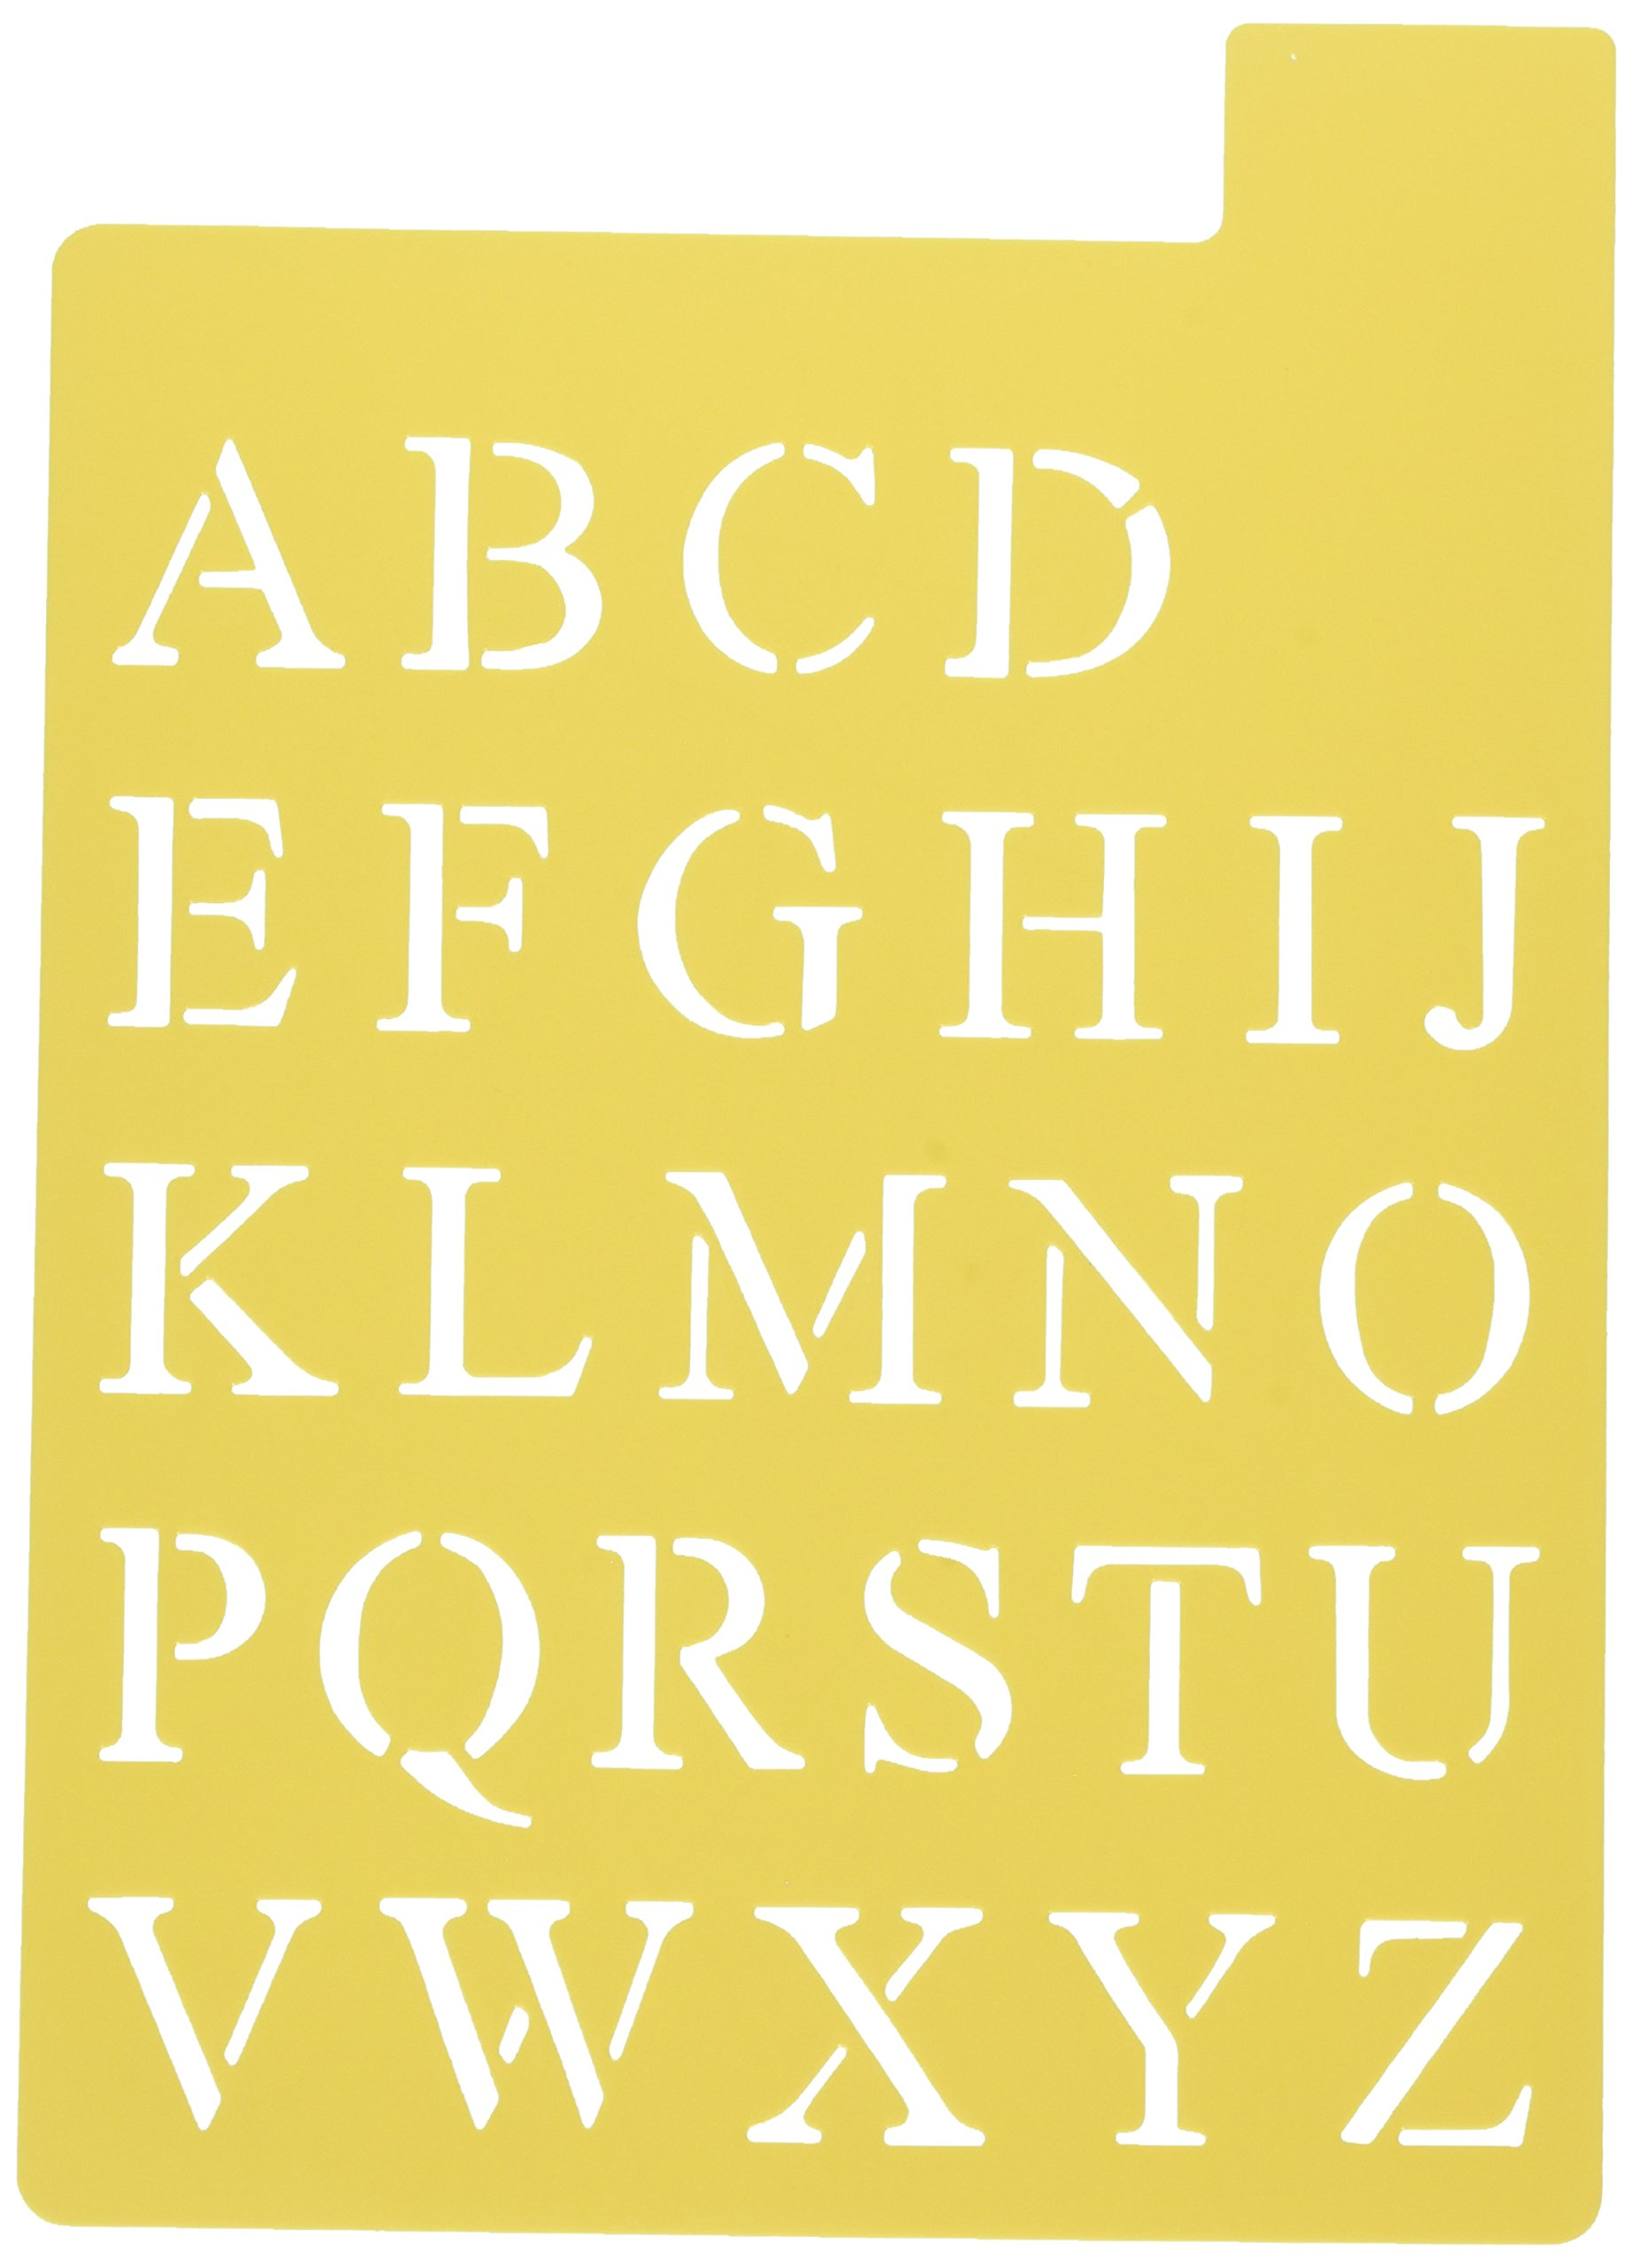 Darice 121725 Upper Case Alphabet Stencil, 3 Fonts in 1, 1-Inch by Darice (Image #1)